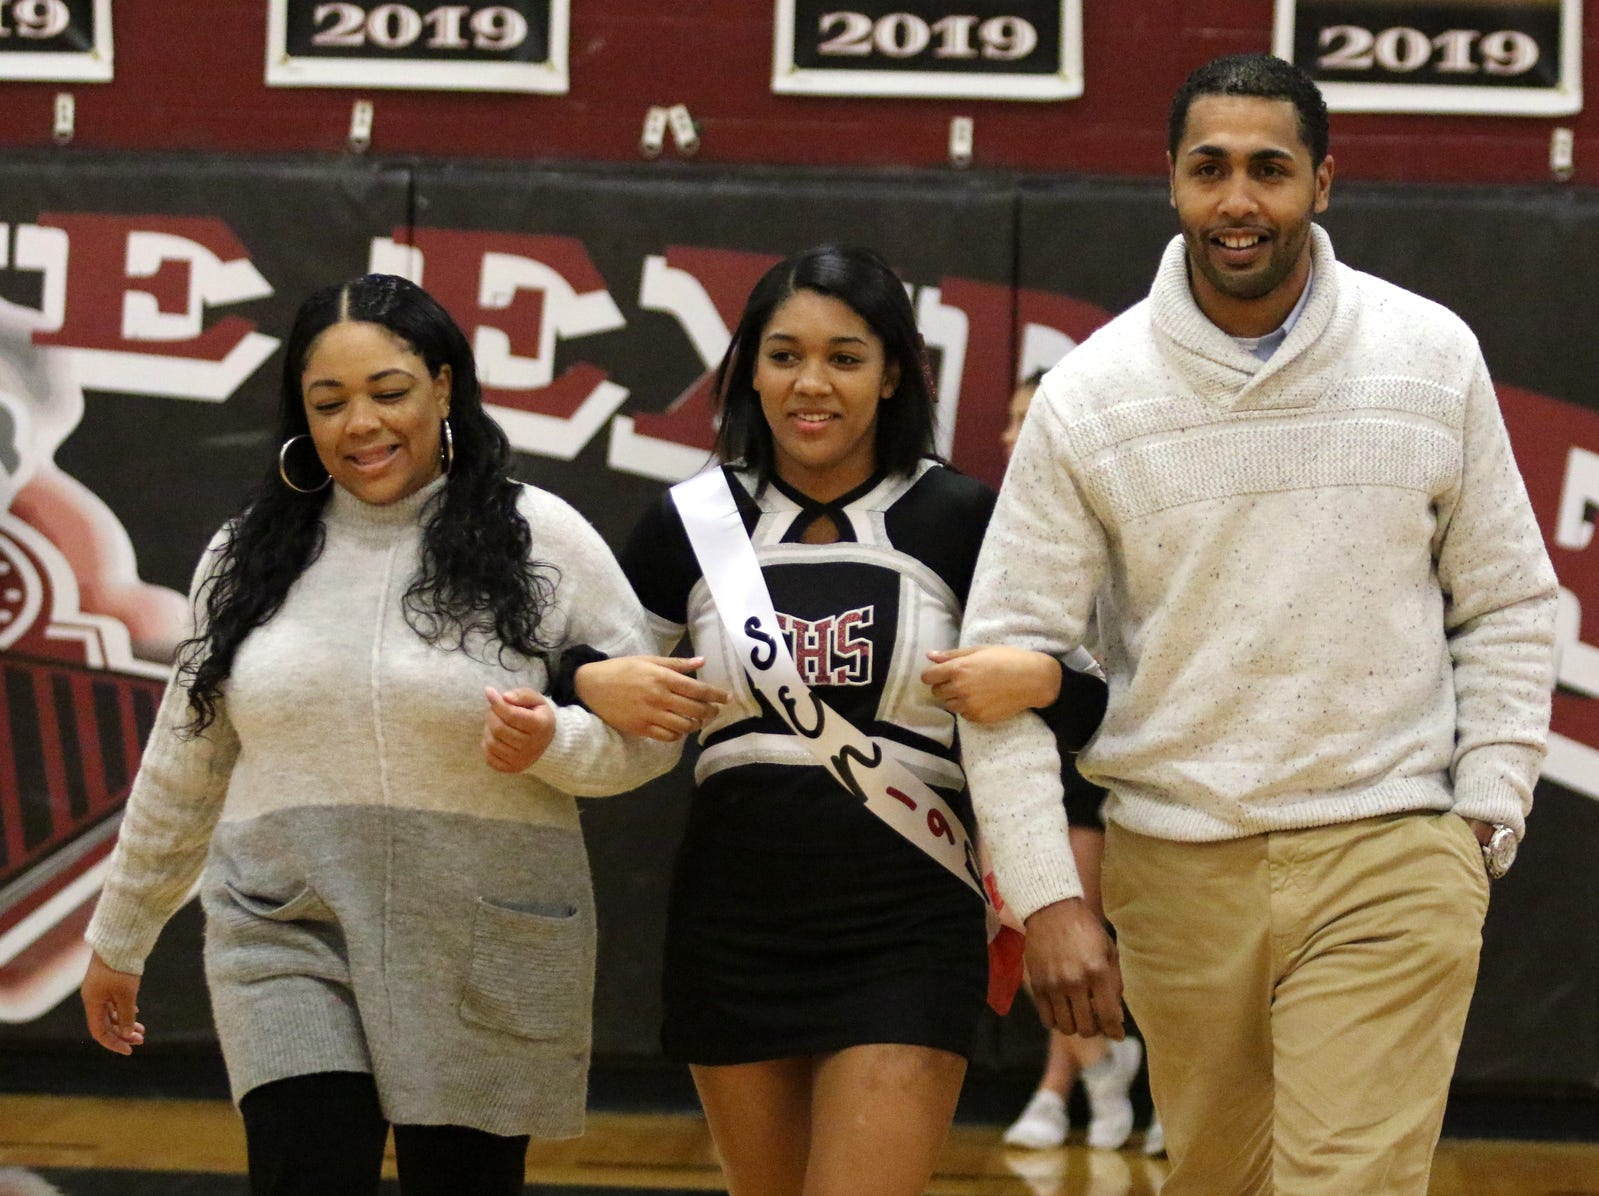 Senior Night festivities were held before the Binghamton at Elmira boys basketball varsity game Feb. 5, 2019 at Elmira High School.